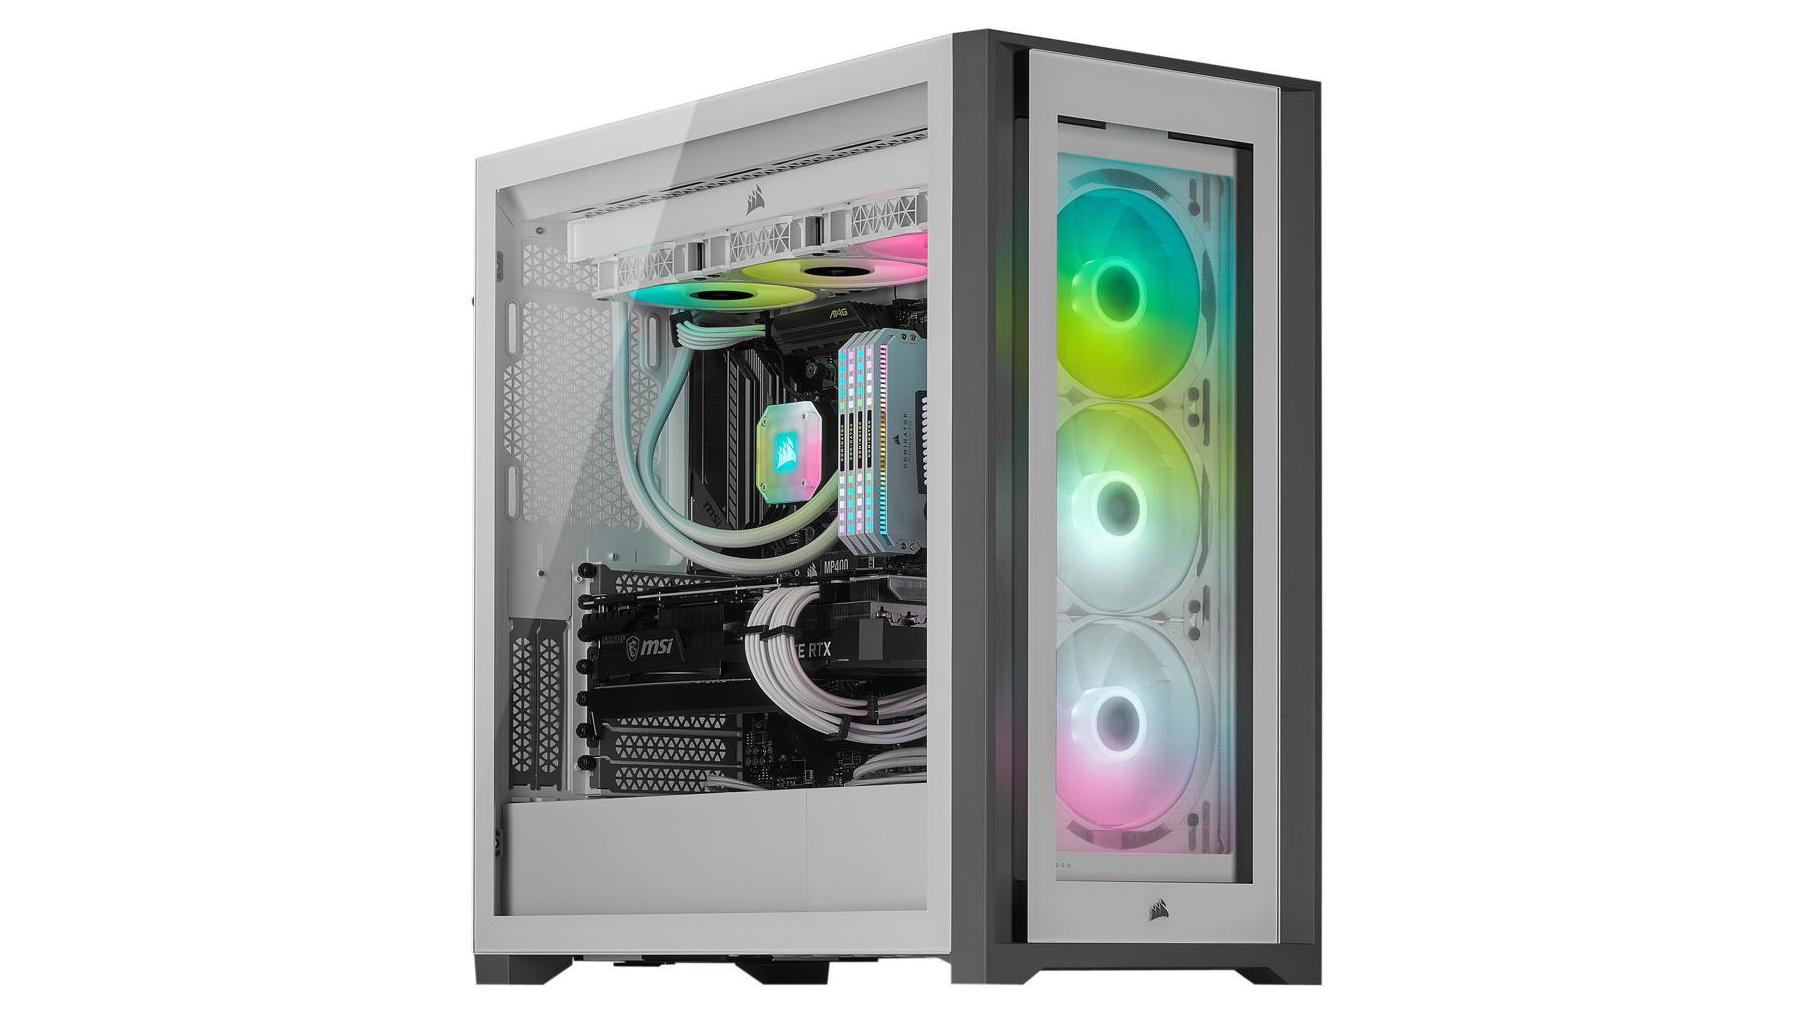 Corsair iCue 5000x white case with full system built inside.